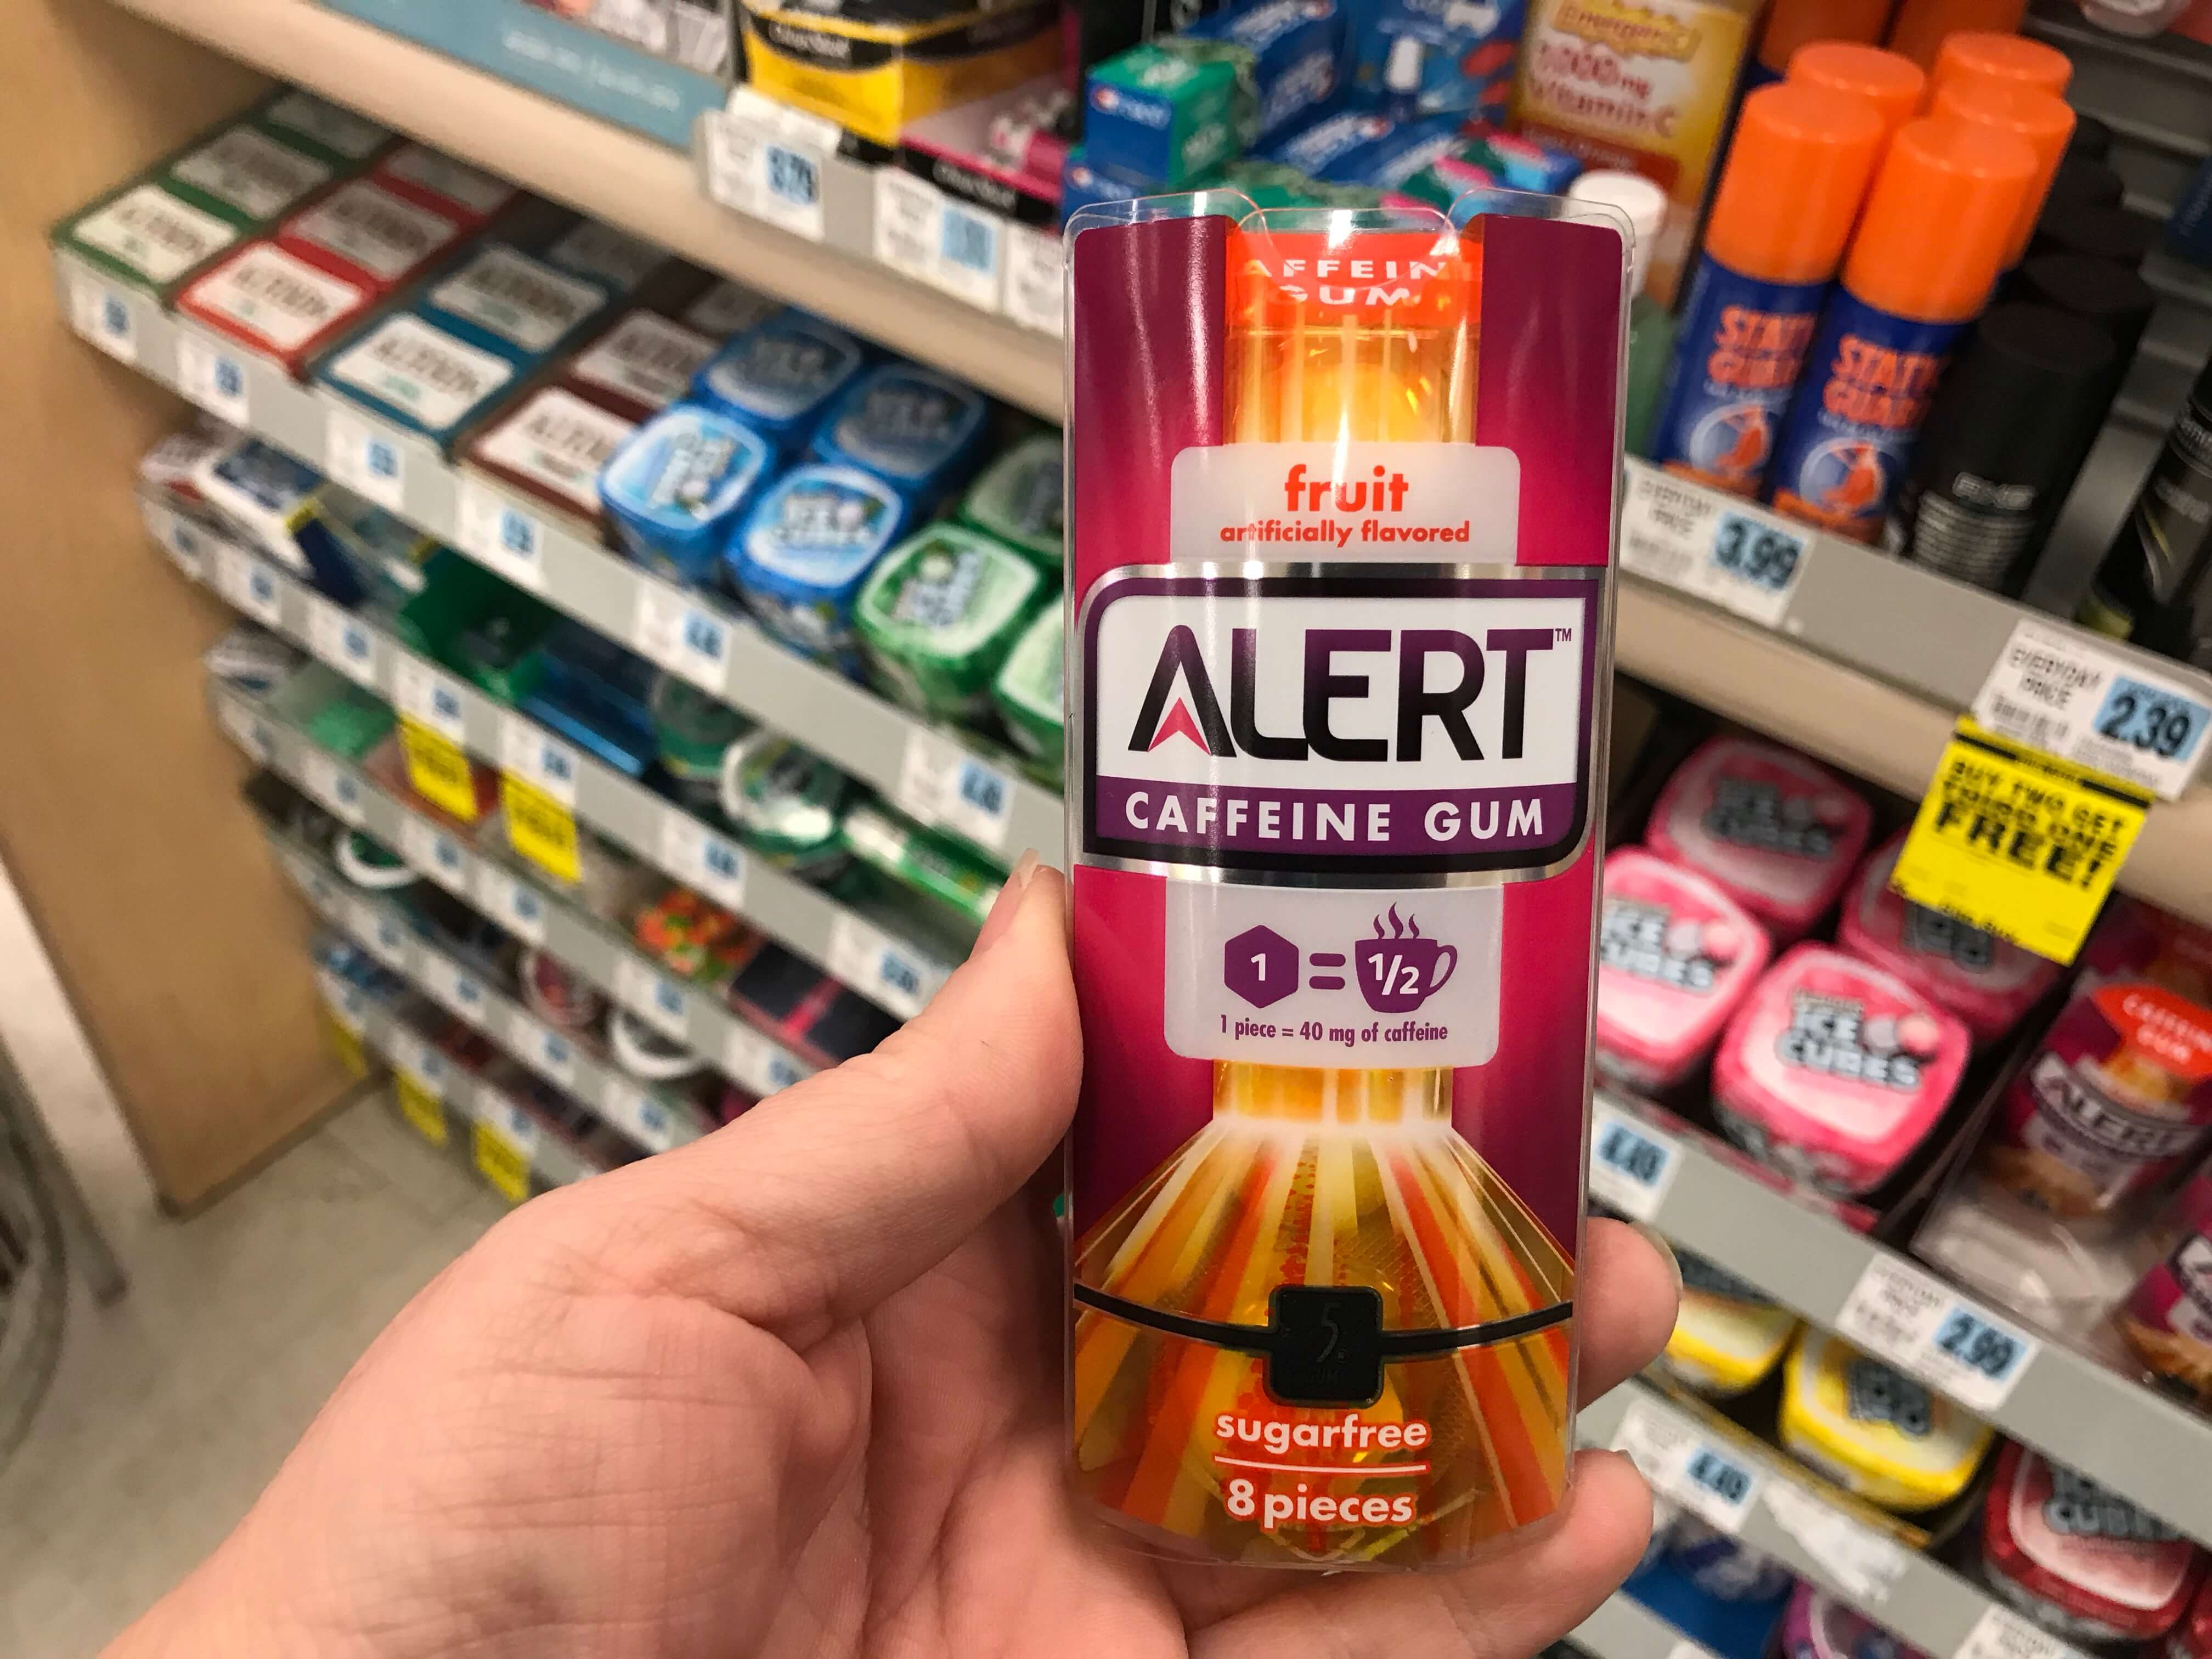 Alert Caffeine Gum Just 099 At Rite Aid